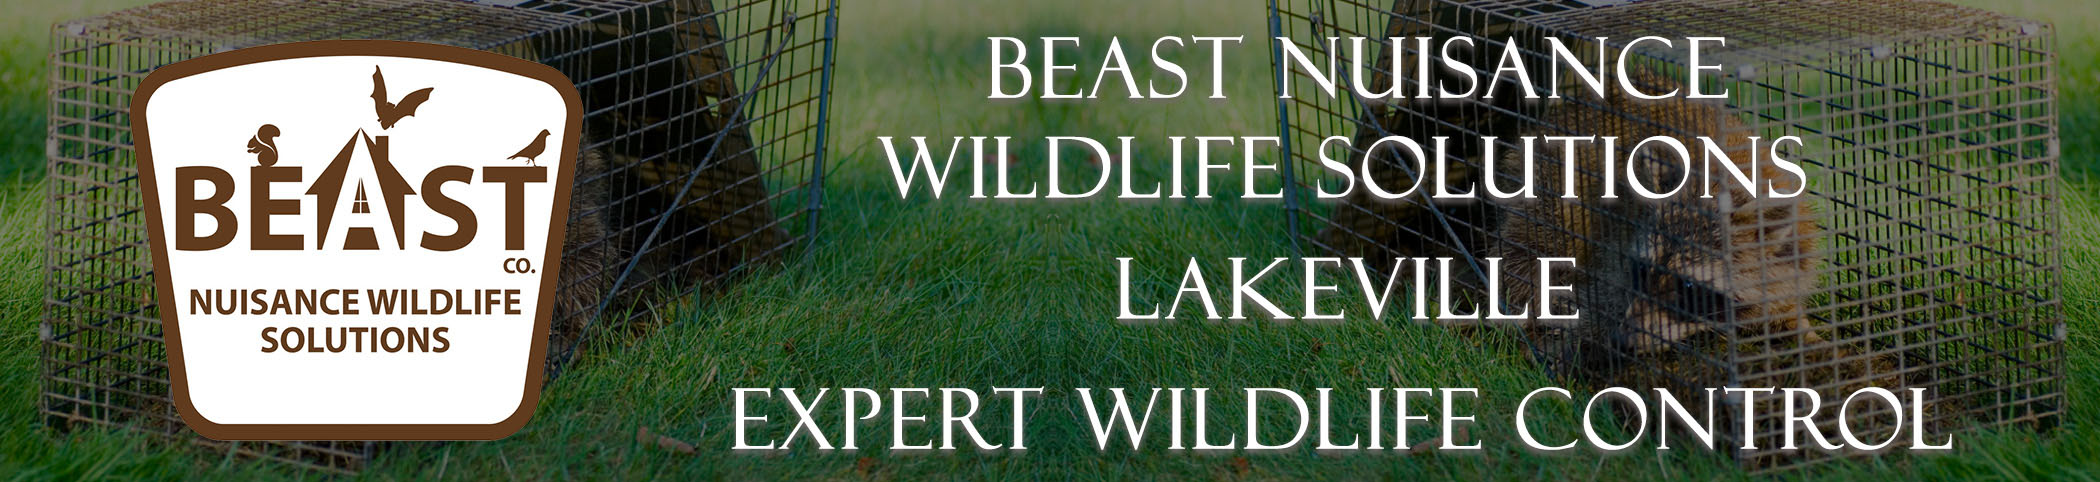 beast_headers_lakeville